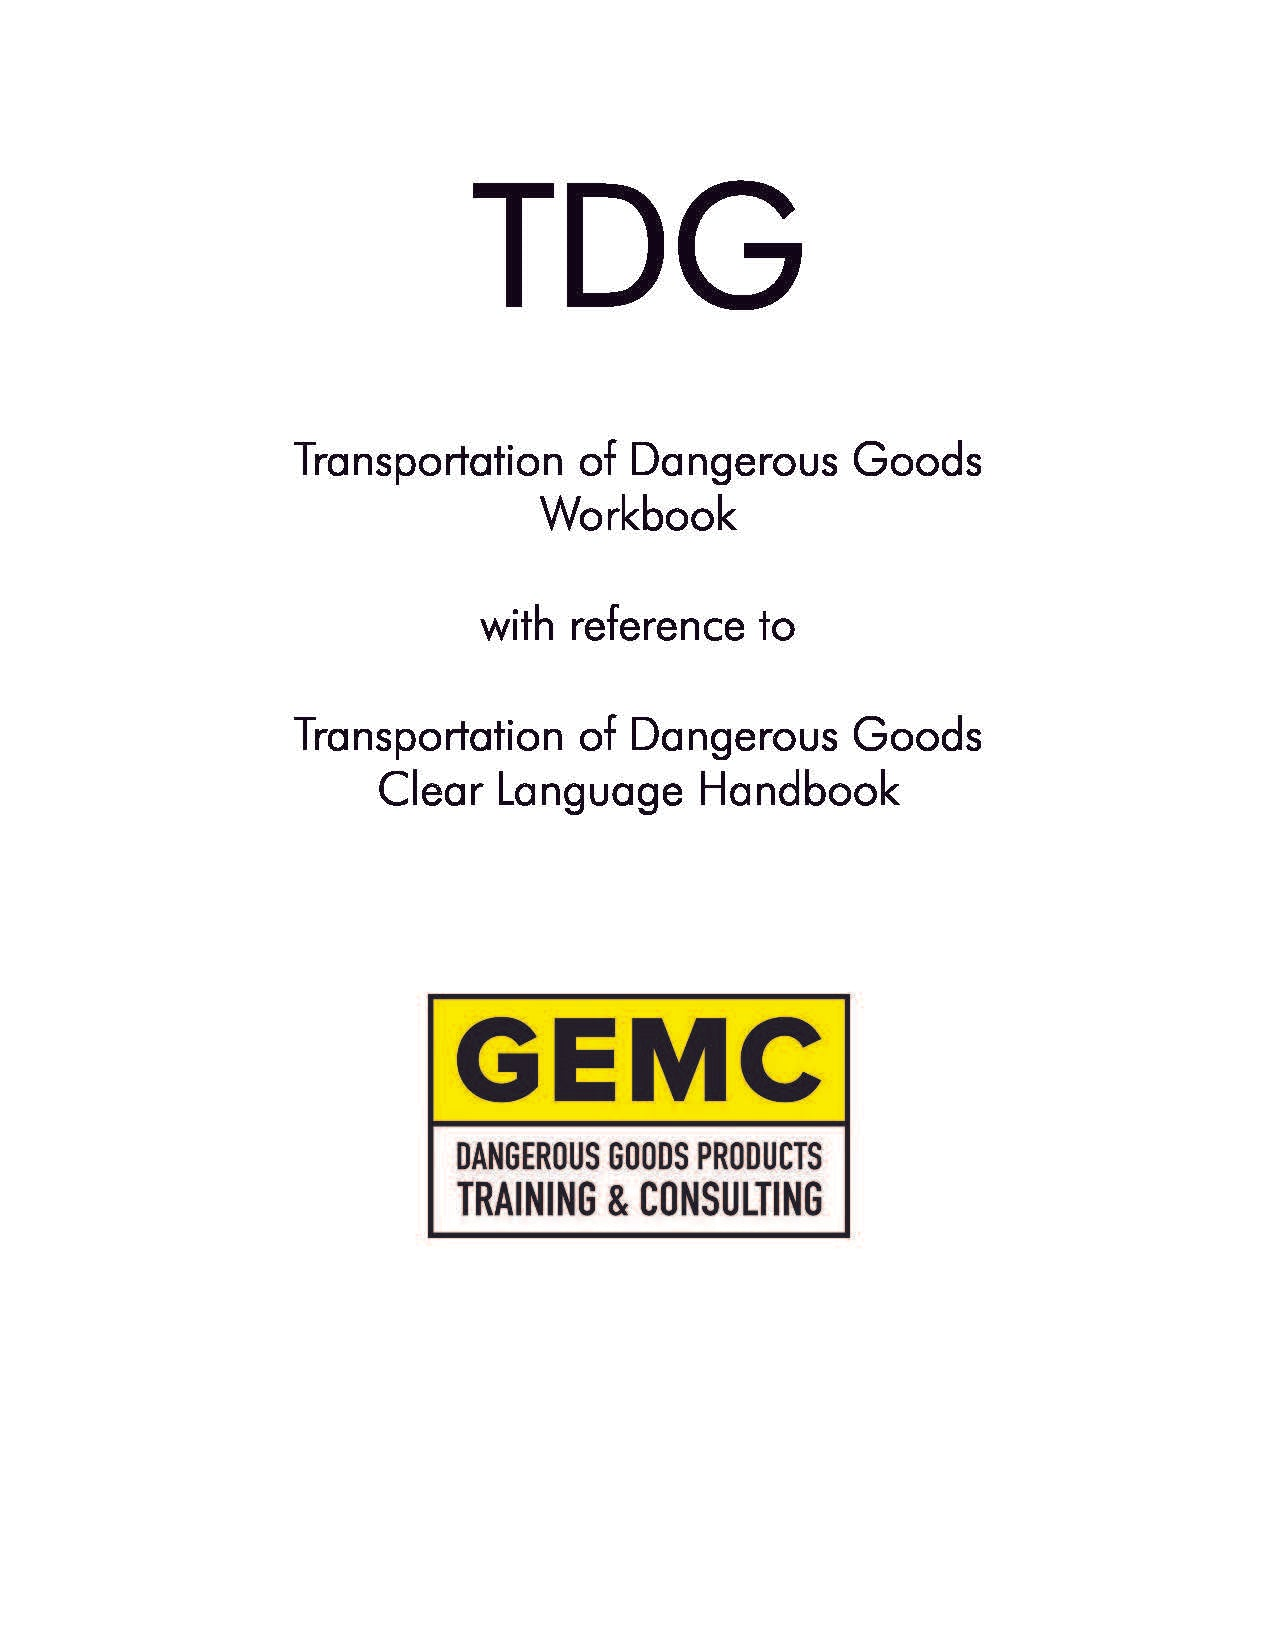 TDG Instructors Package